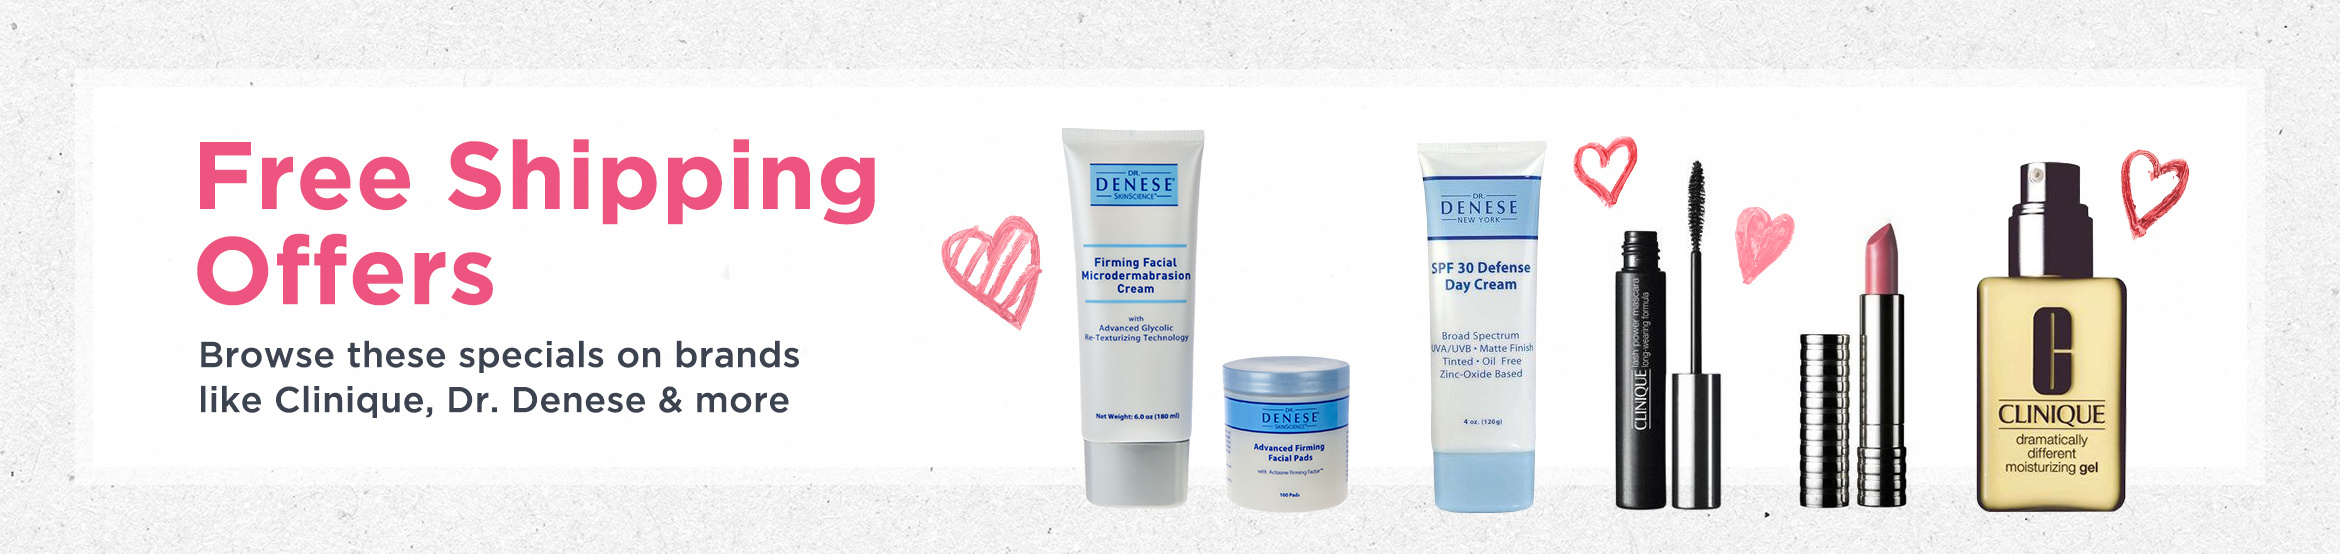 Free Shipping Offers. Browse these specials on brands like Clinique, Dr. Denese & more